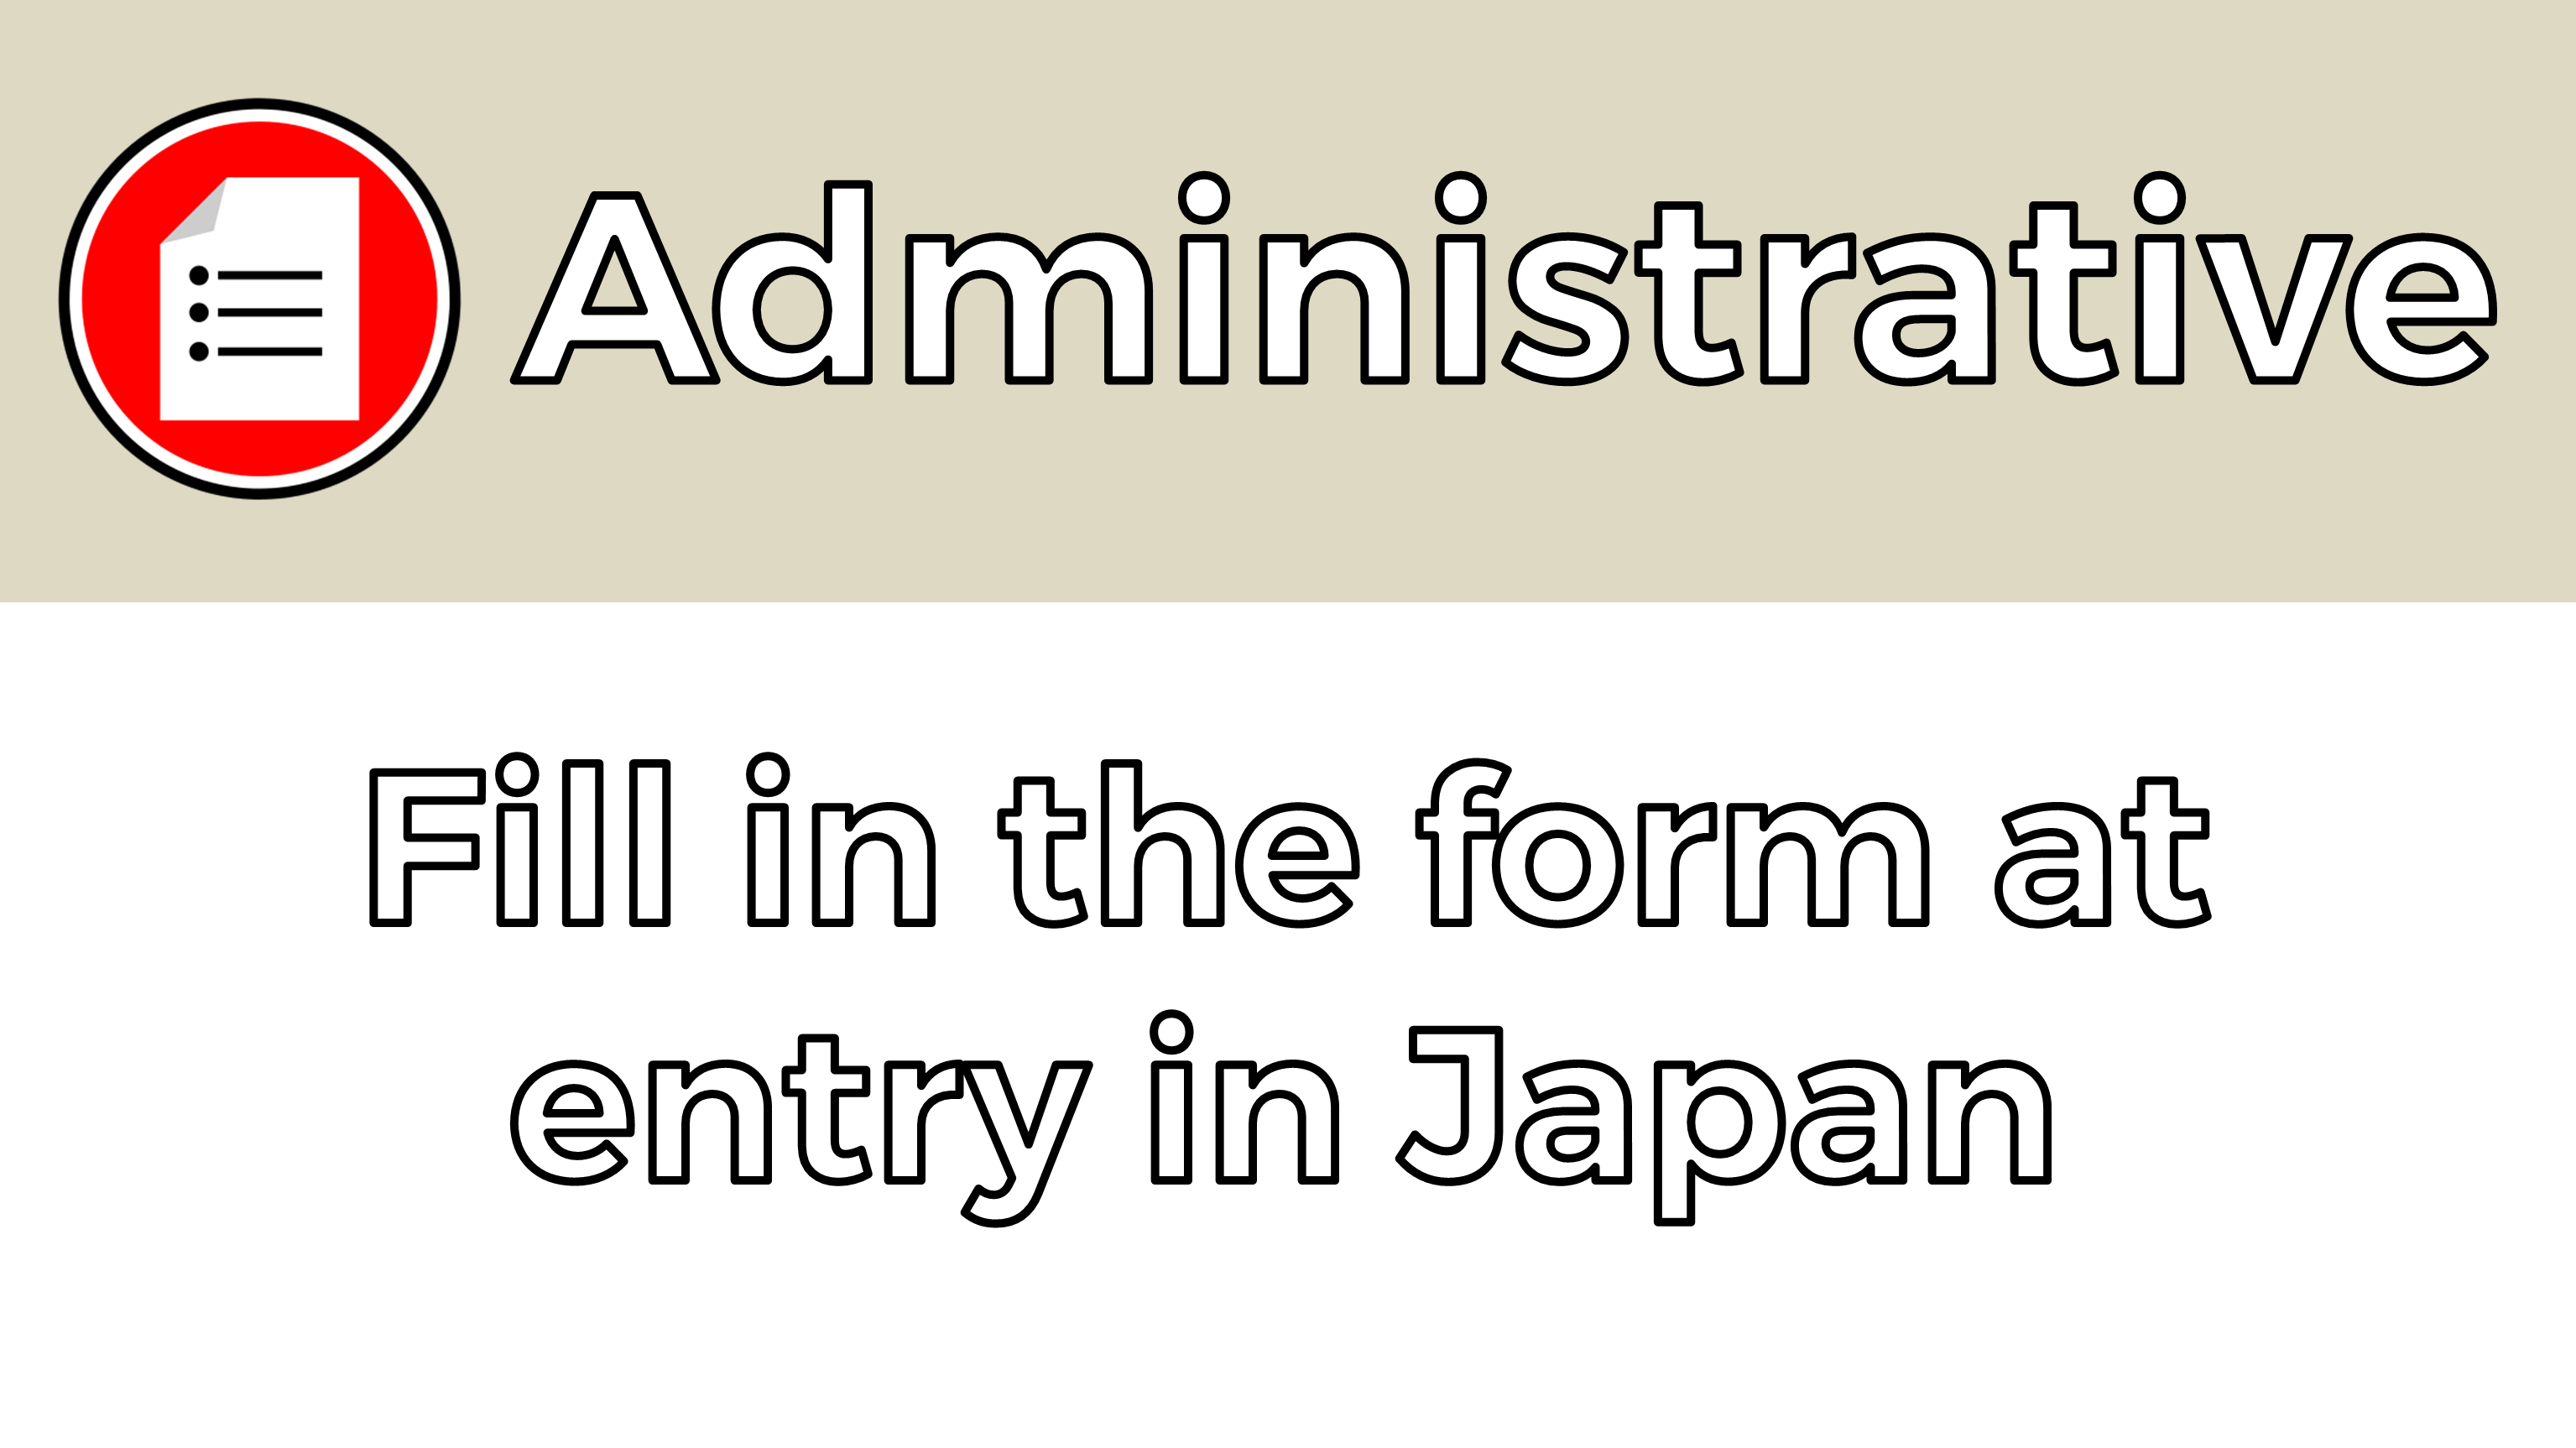 Administrative how to fill in the customs declaration at entry in administrative how to fill in the customs declaration at entry in japan fait au japon spiritdancerdesigns Choice Image